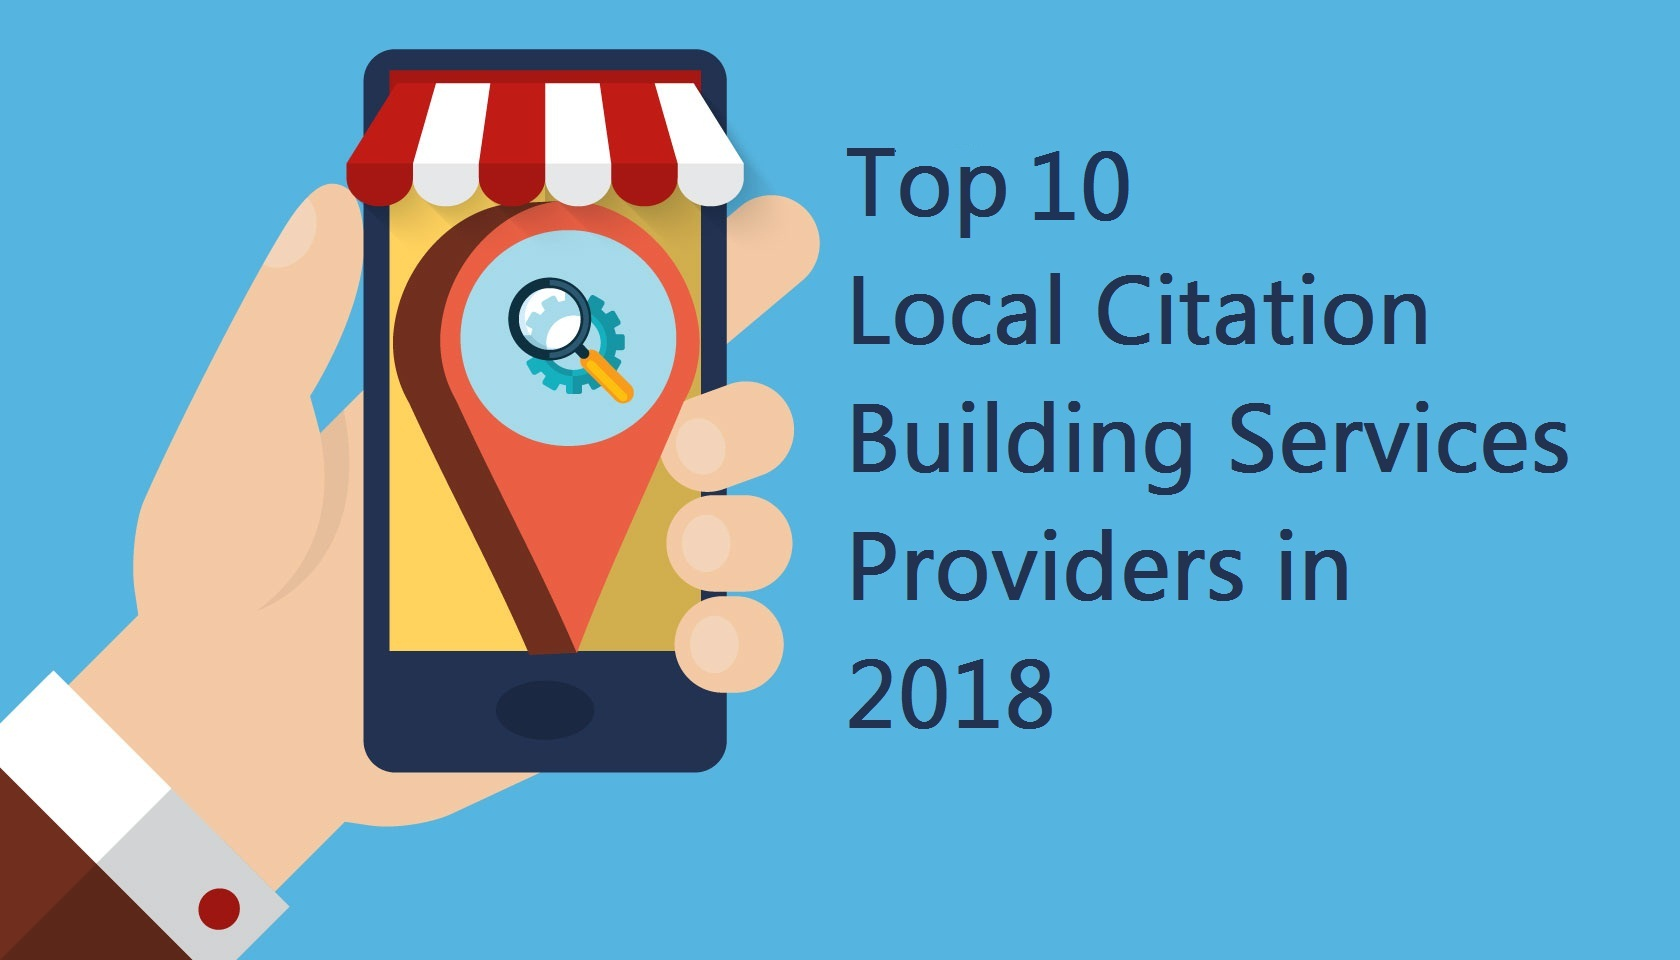 Top 10 Local Citation Building Services Providers For USA